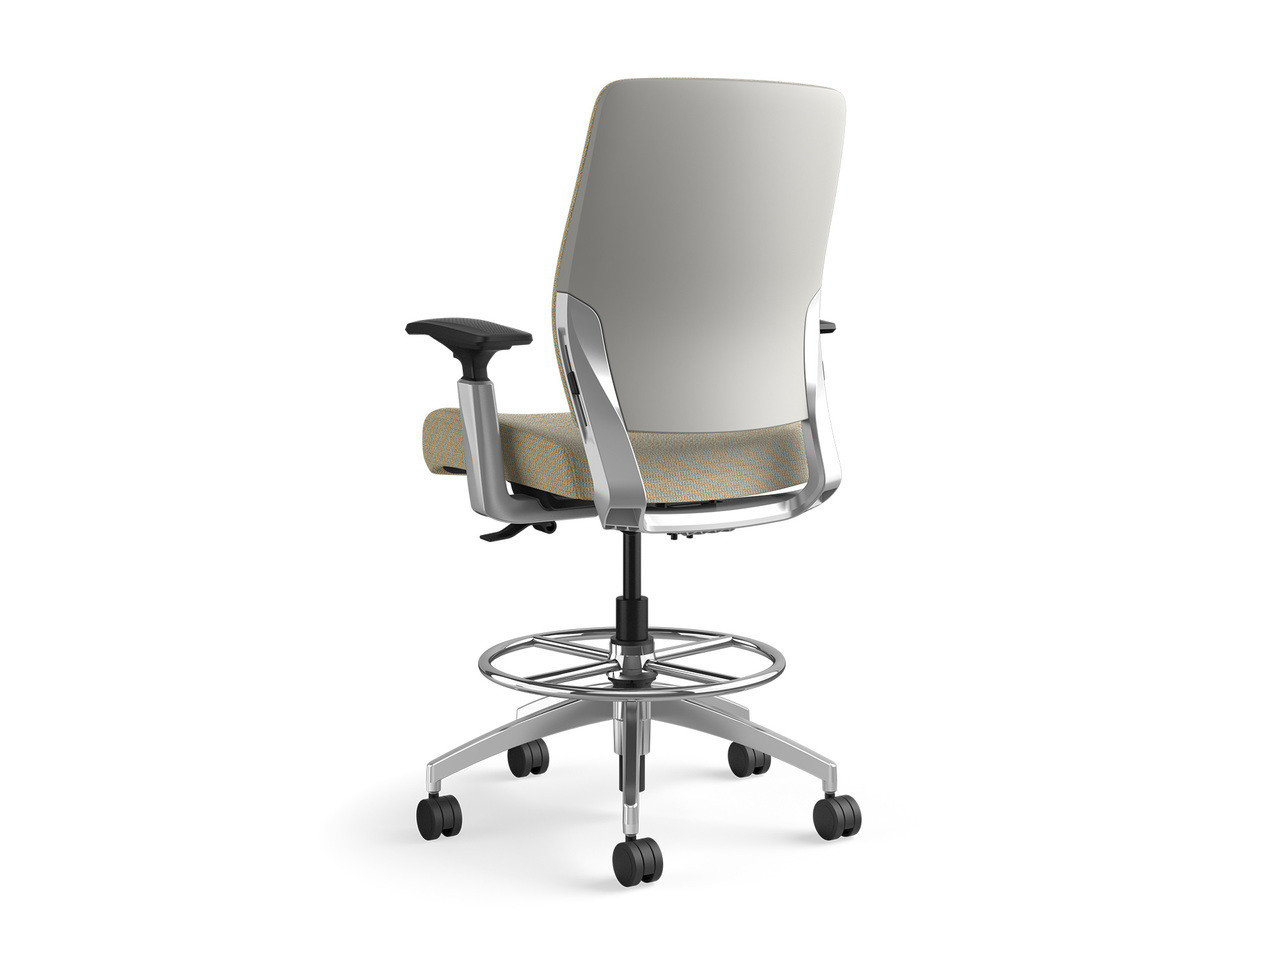 Groovy Sitonit Amplify Office Furniture Warehouse Beatyapartments Chair Design Images Beatyapartmentscom